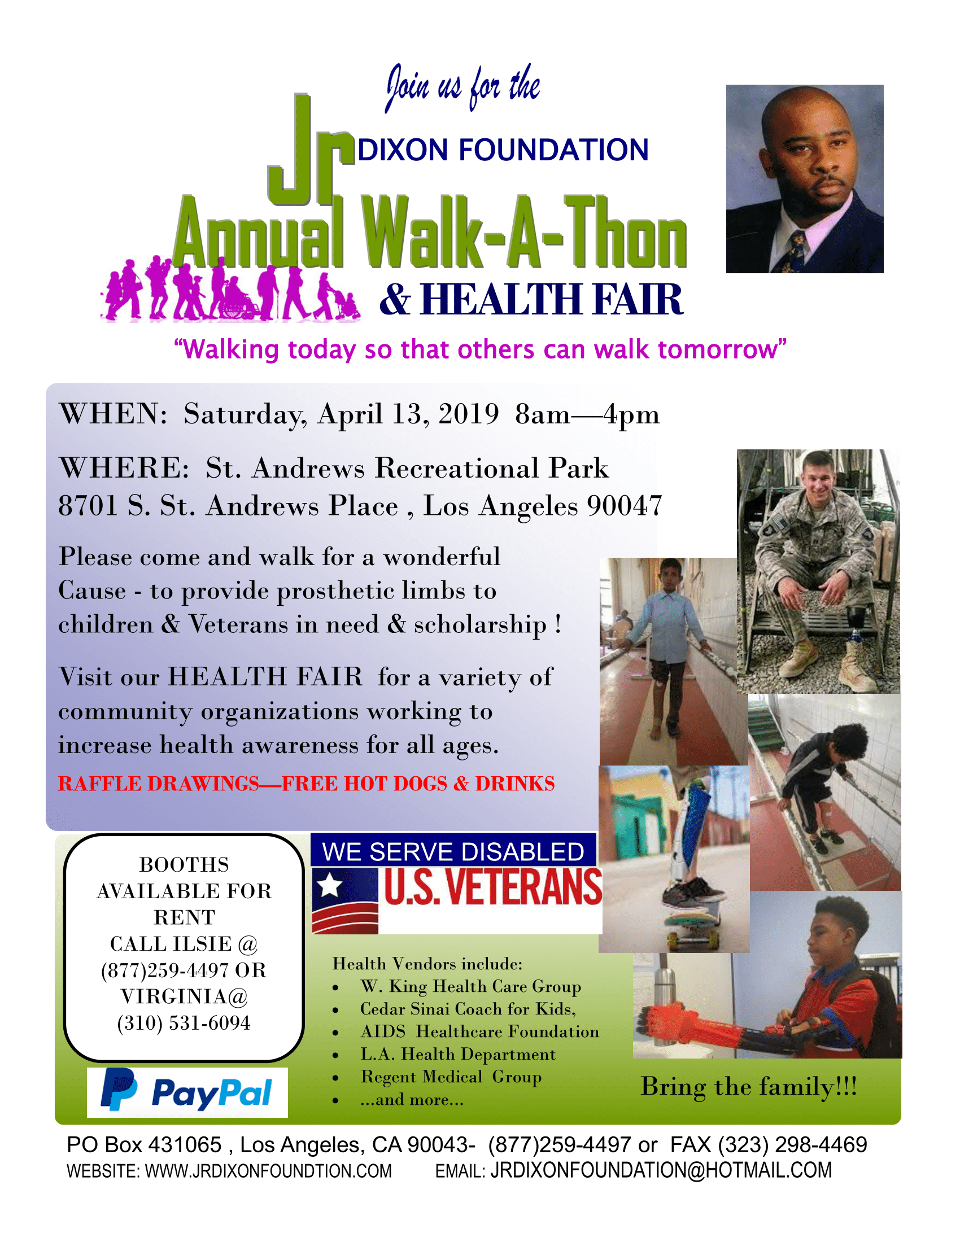 Annual Walk A Thon Flyer